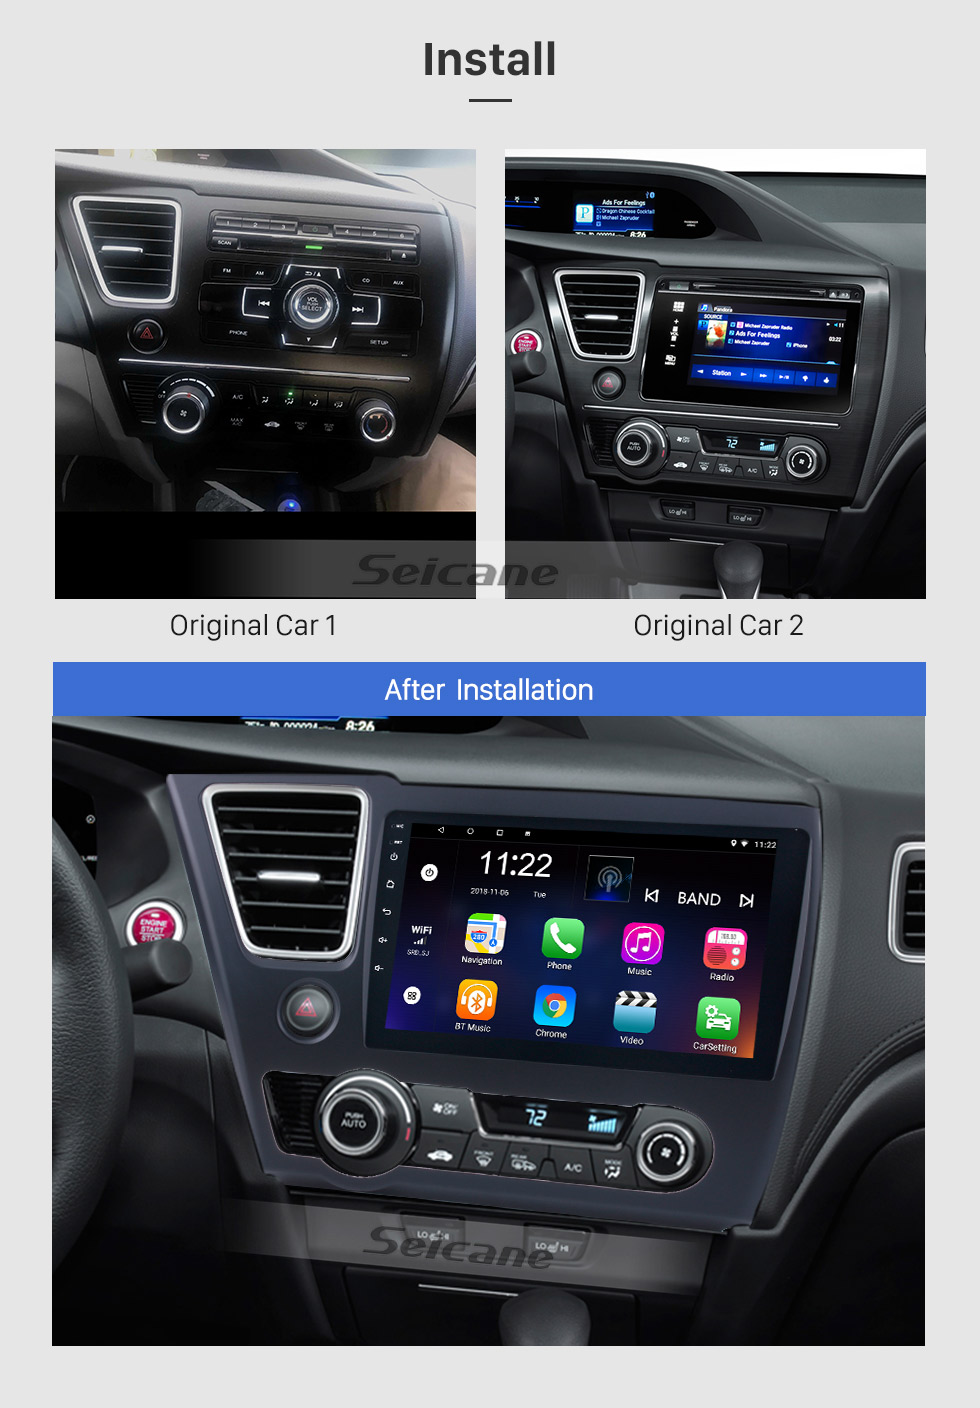 Seicane 9 inch 2014 2015 2016 2017 HONDA CIVIC Android 8.1 HD Touchscreen Radio GPS Navigation head unit with Bluetooth WIFI Rearview camera AUX 1080P OBDII DVR Mirror Link